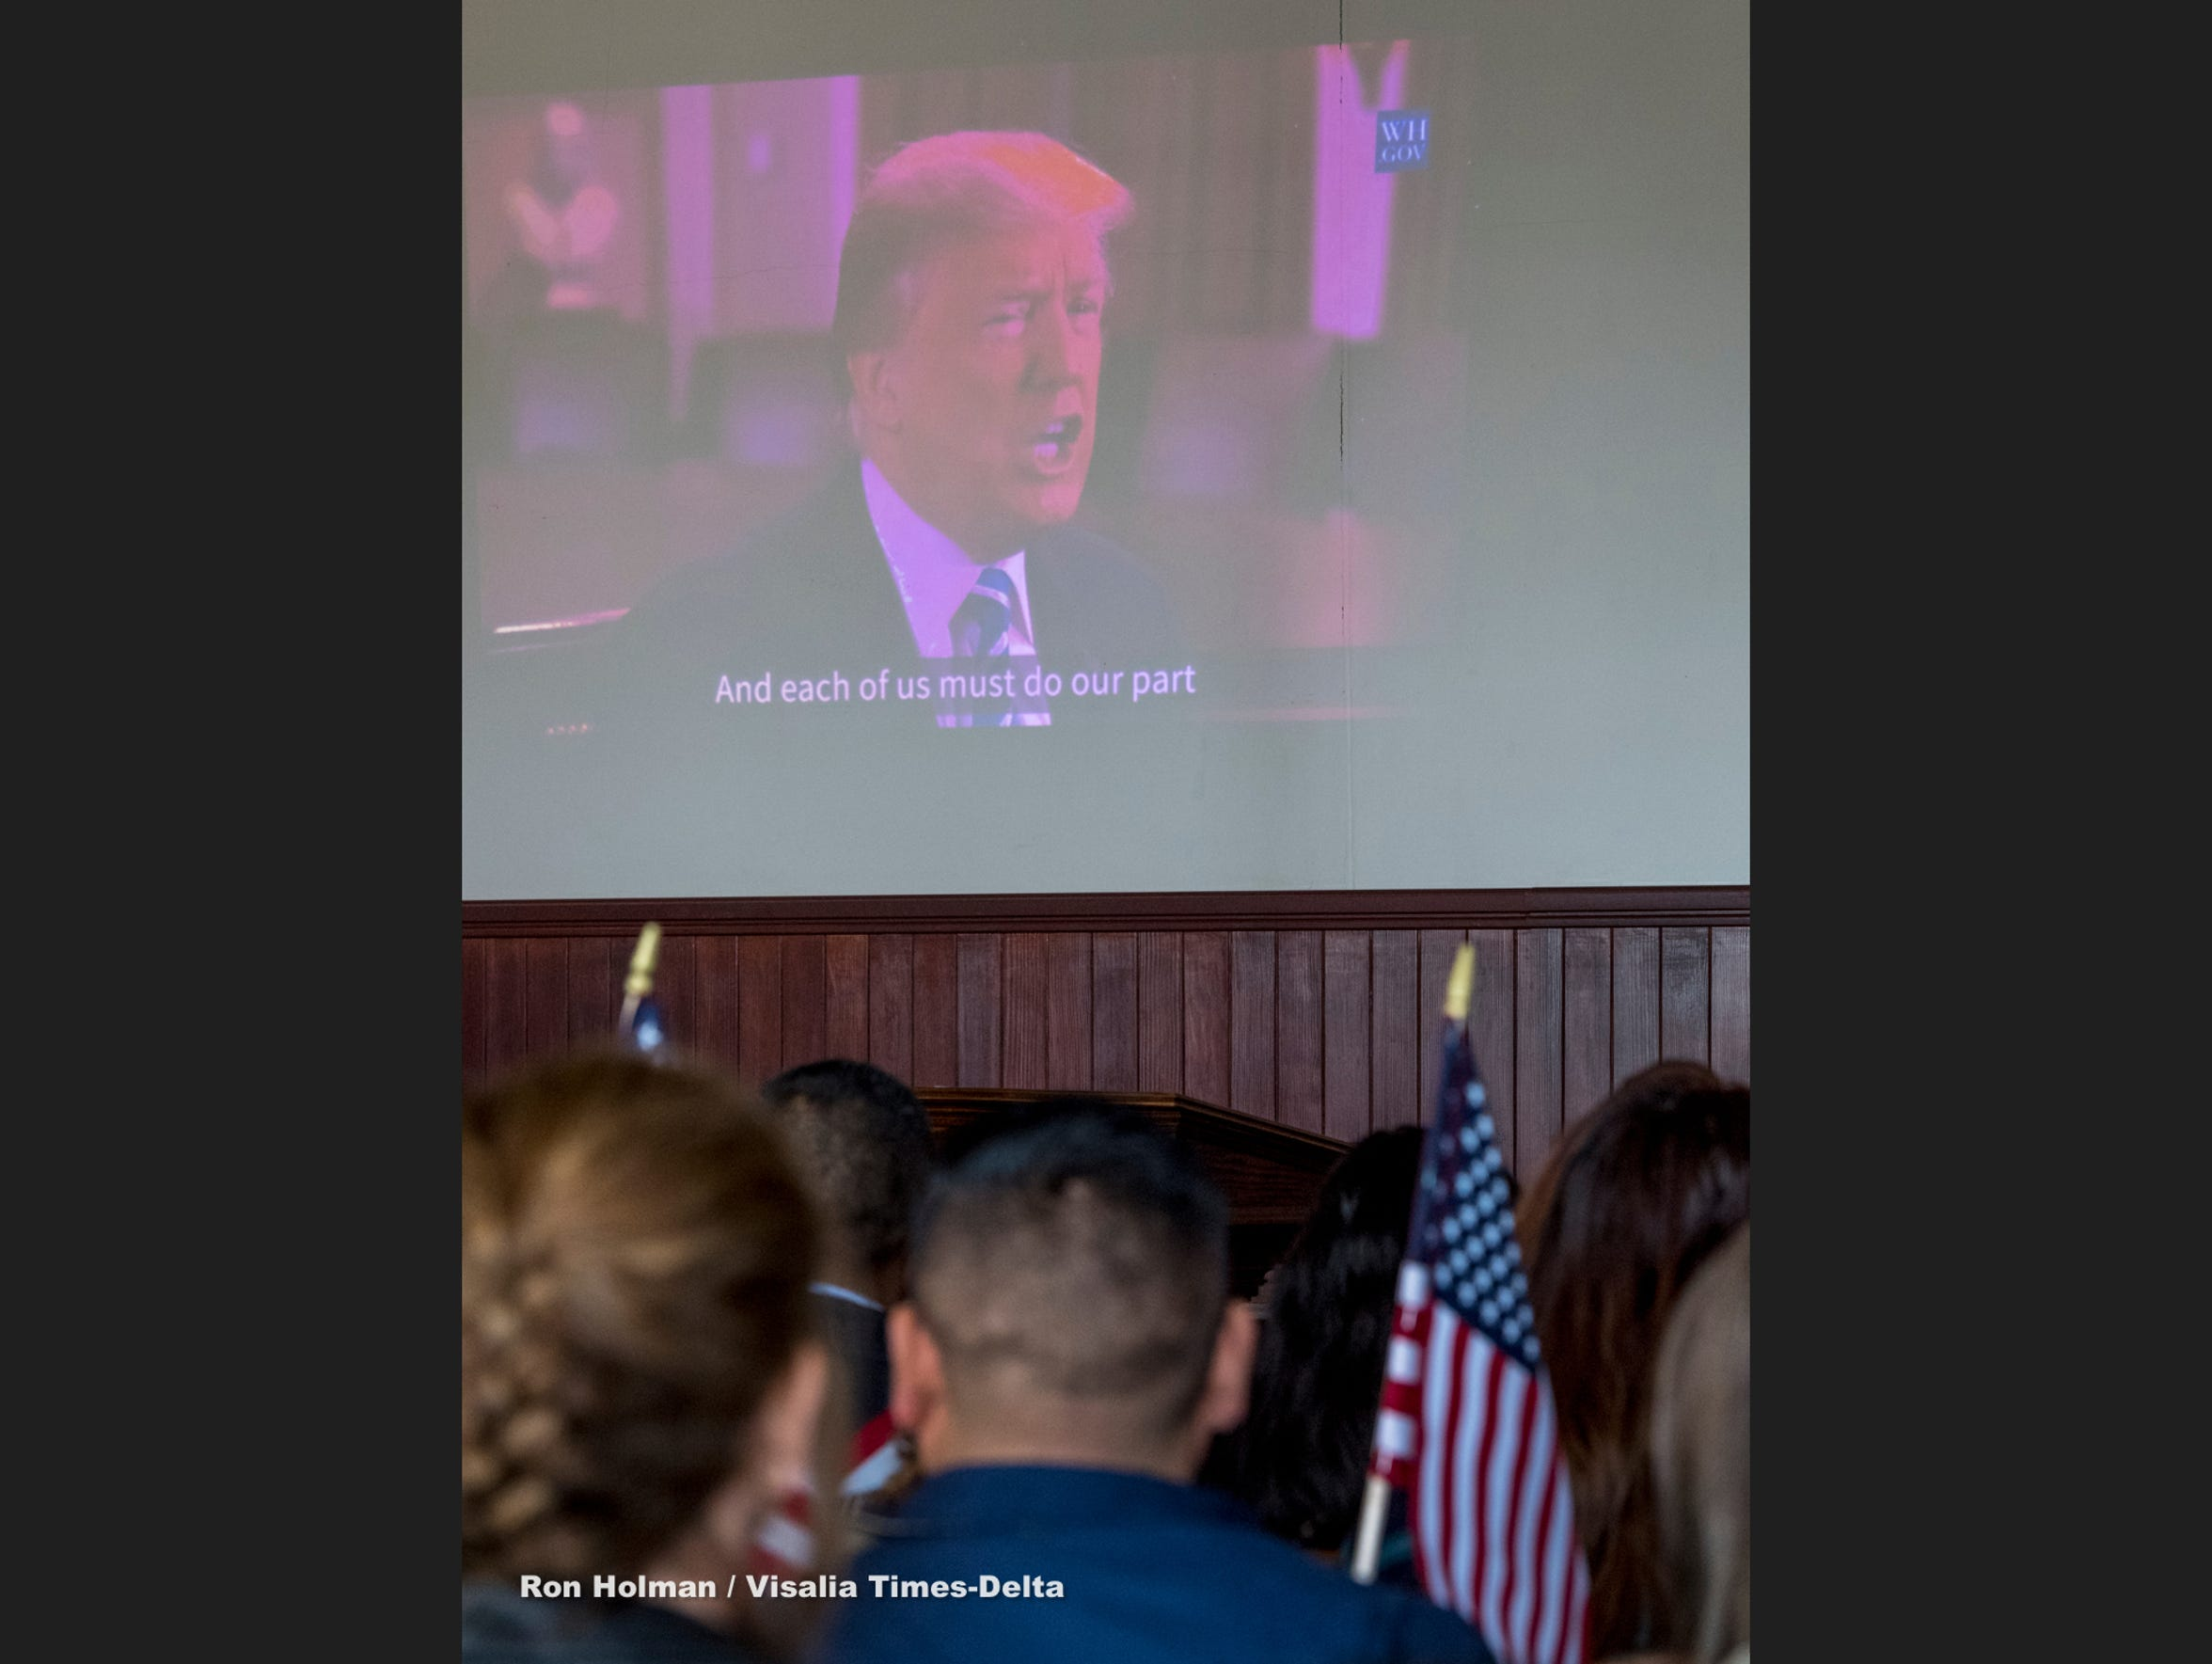 A video of President Donald Trump was played to welcome